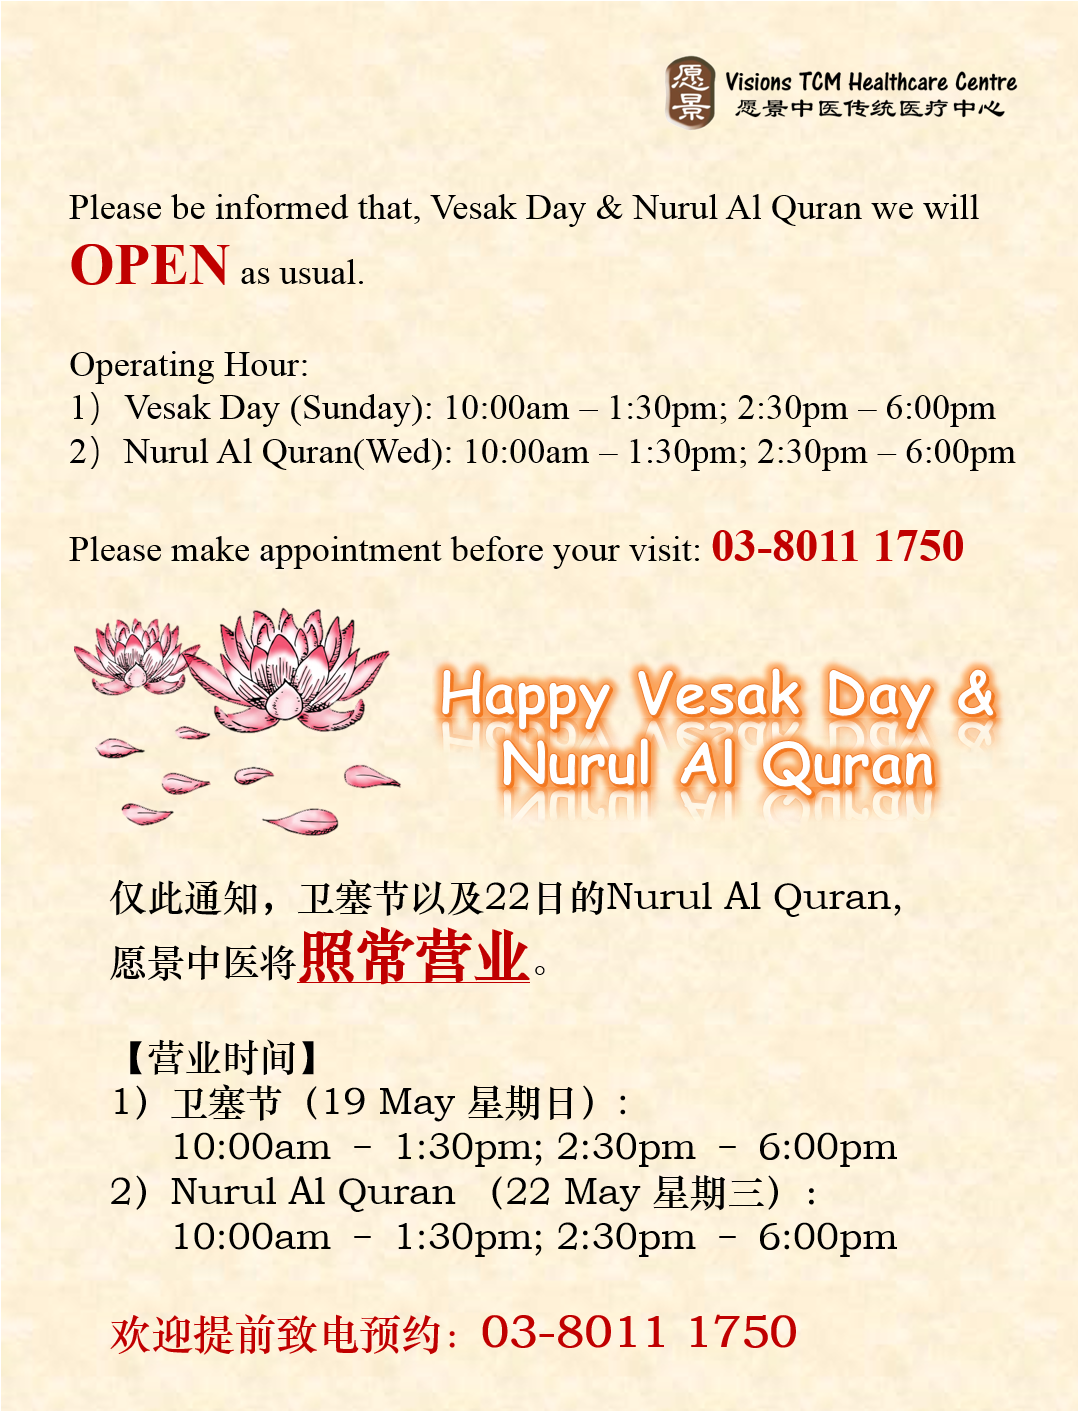 OPEN as usual – Vesak Day & Nurul Al Quran